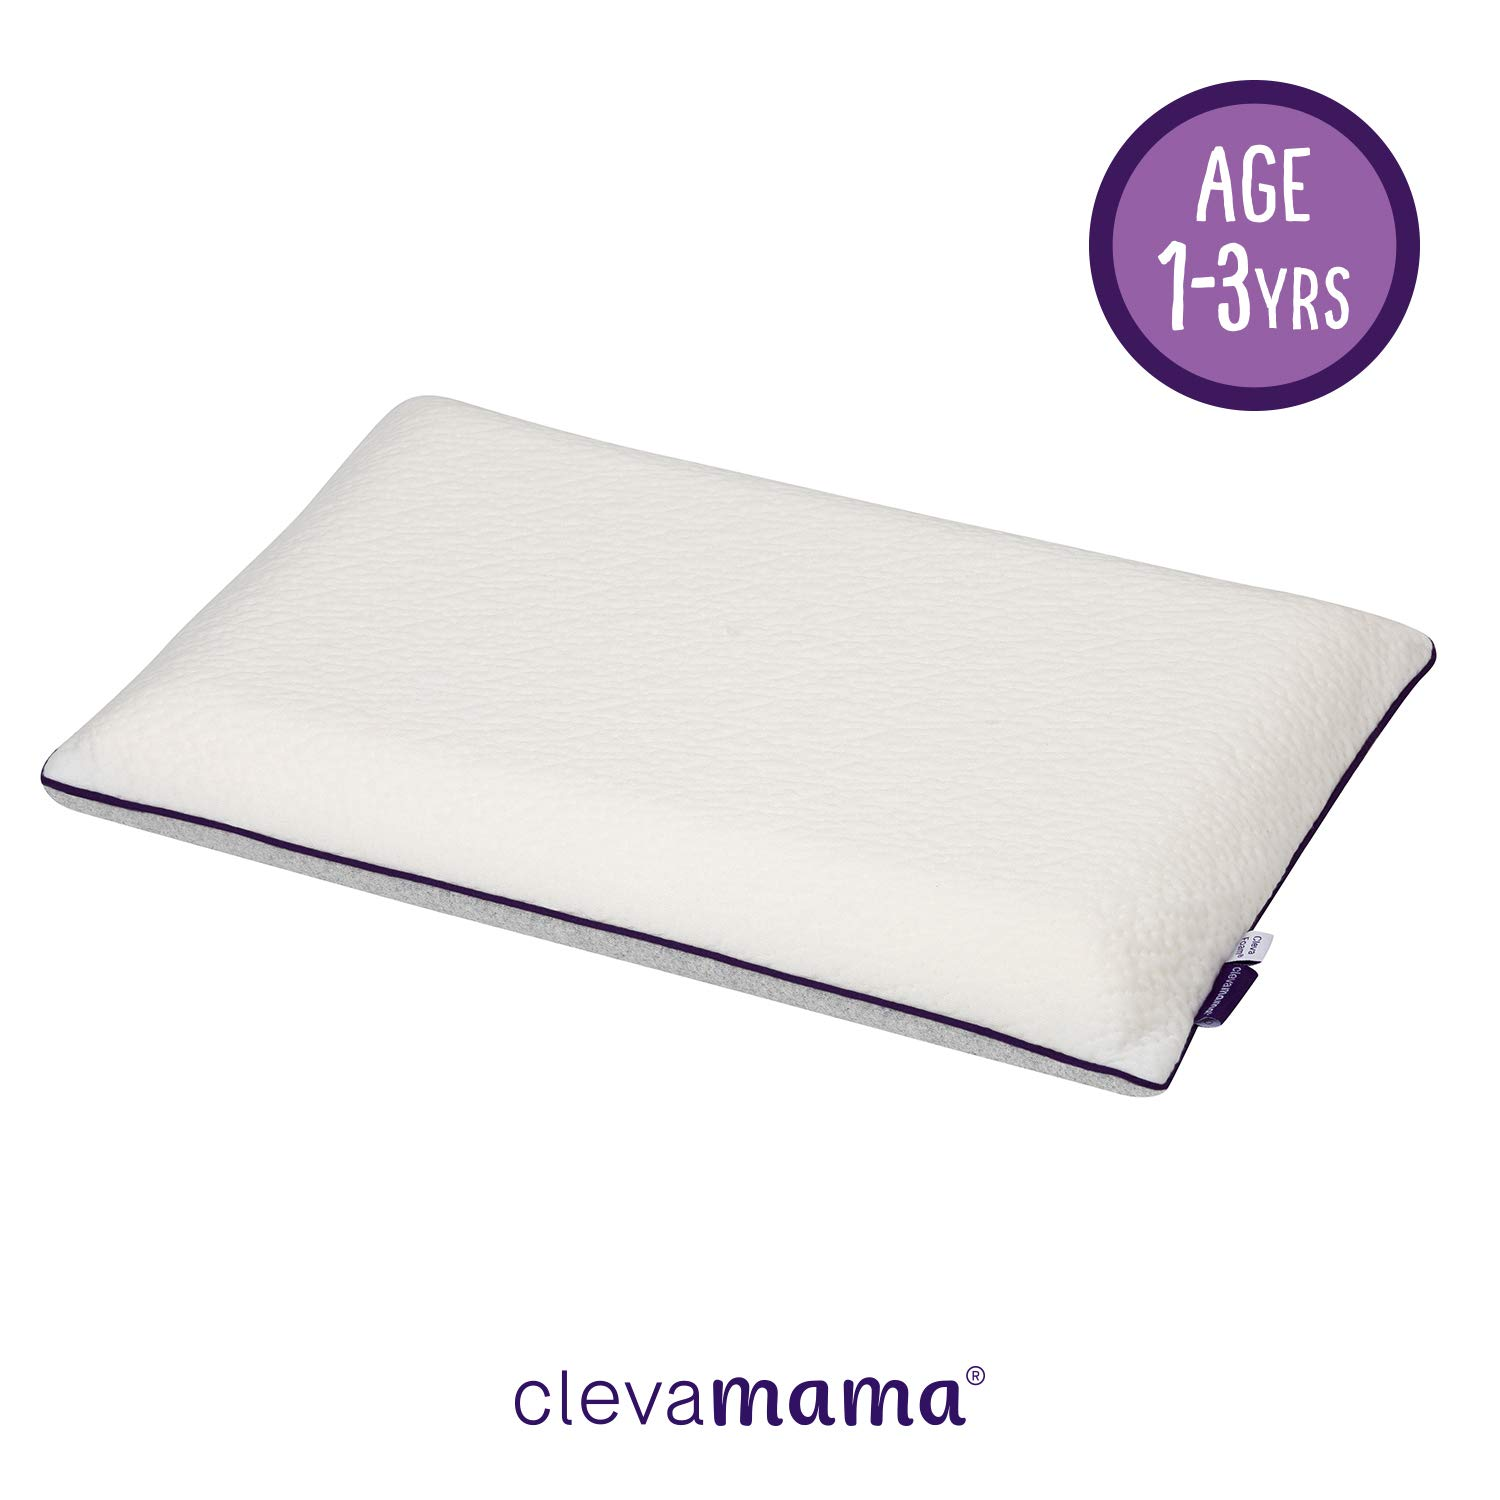 ClevaMama ClevaFoam Toddler Pillow - Breathable Kids Pillow to Prevent Flat Head Syndrome +12 Months